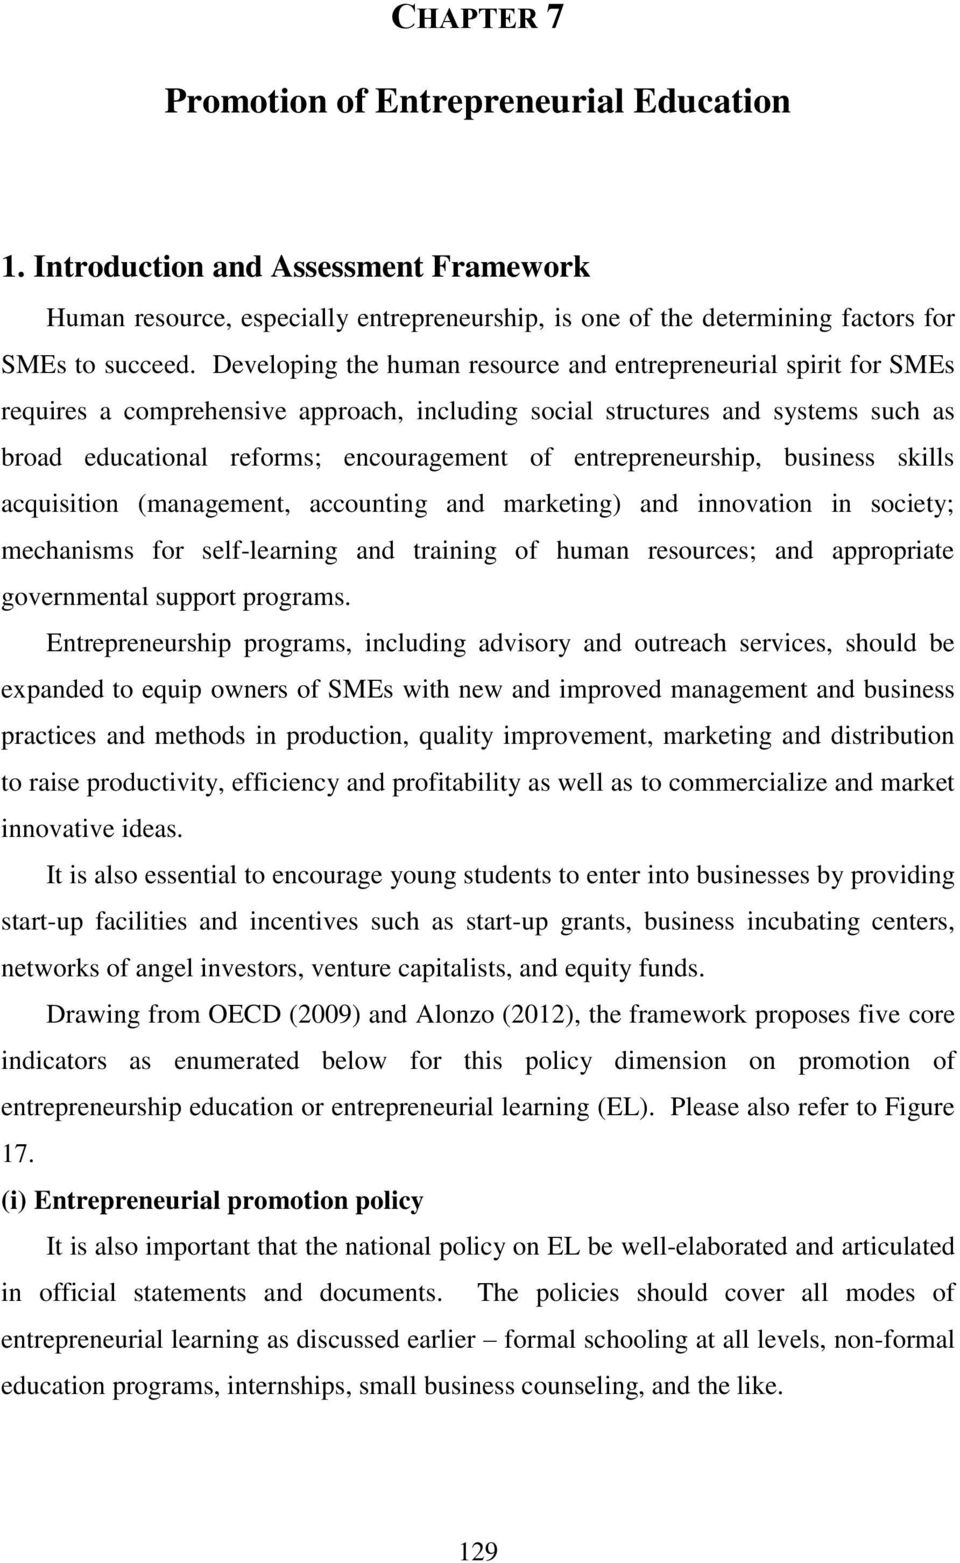 entrepreneurship, business skills acquisition (management, accounting and marketing) and innovation in society; mechanisms for self-learning and training of human resources; and appropriate